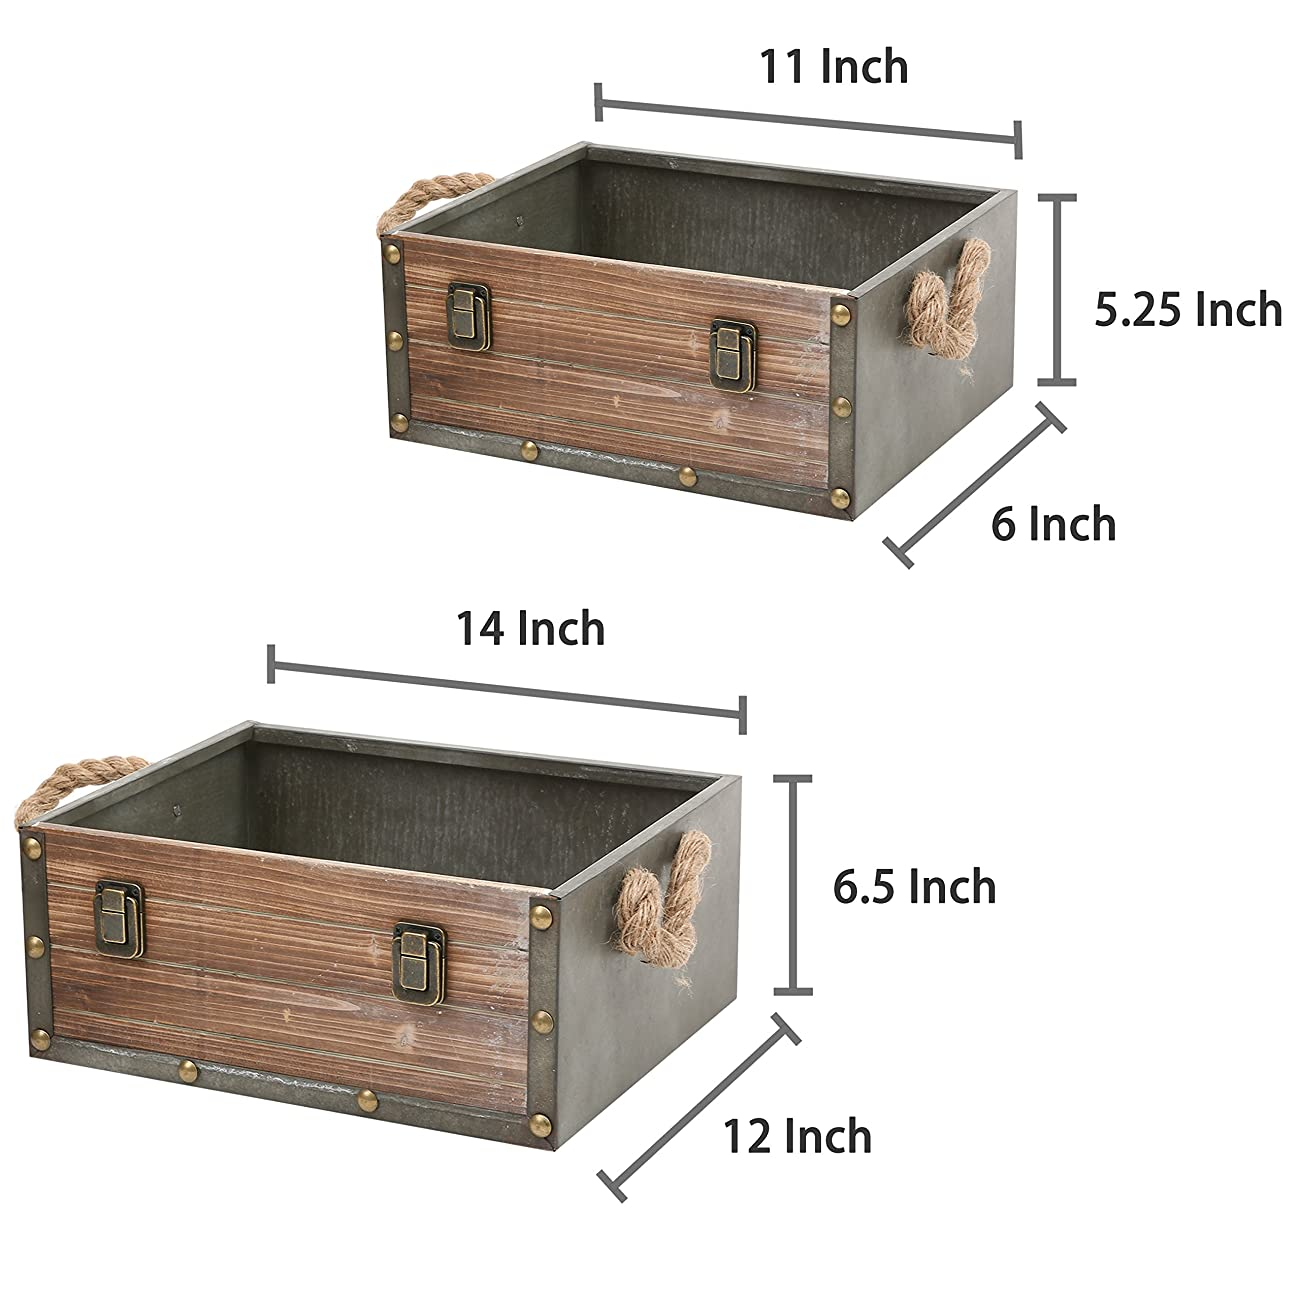 MyGift Set of 2 Wood Crates w/ Rope Handles, Rustic Nesting Storage Boxes, Brown 5